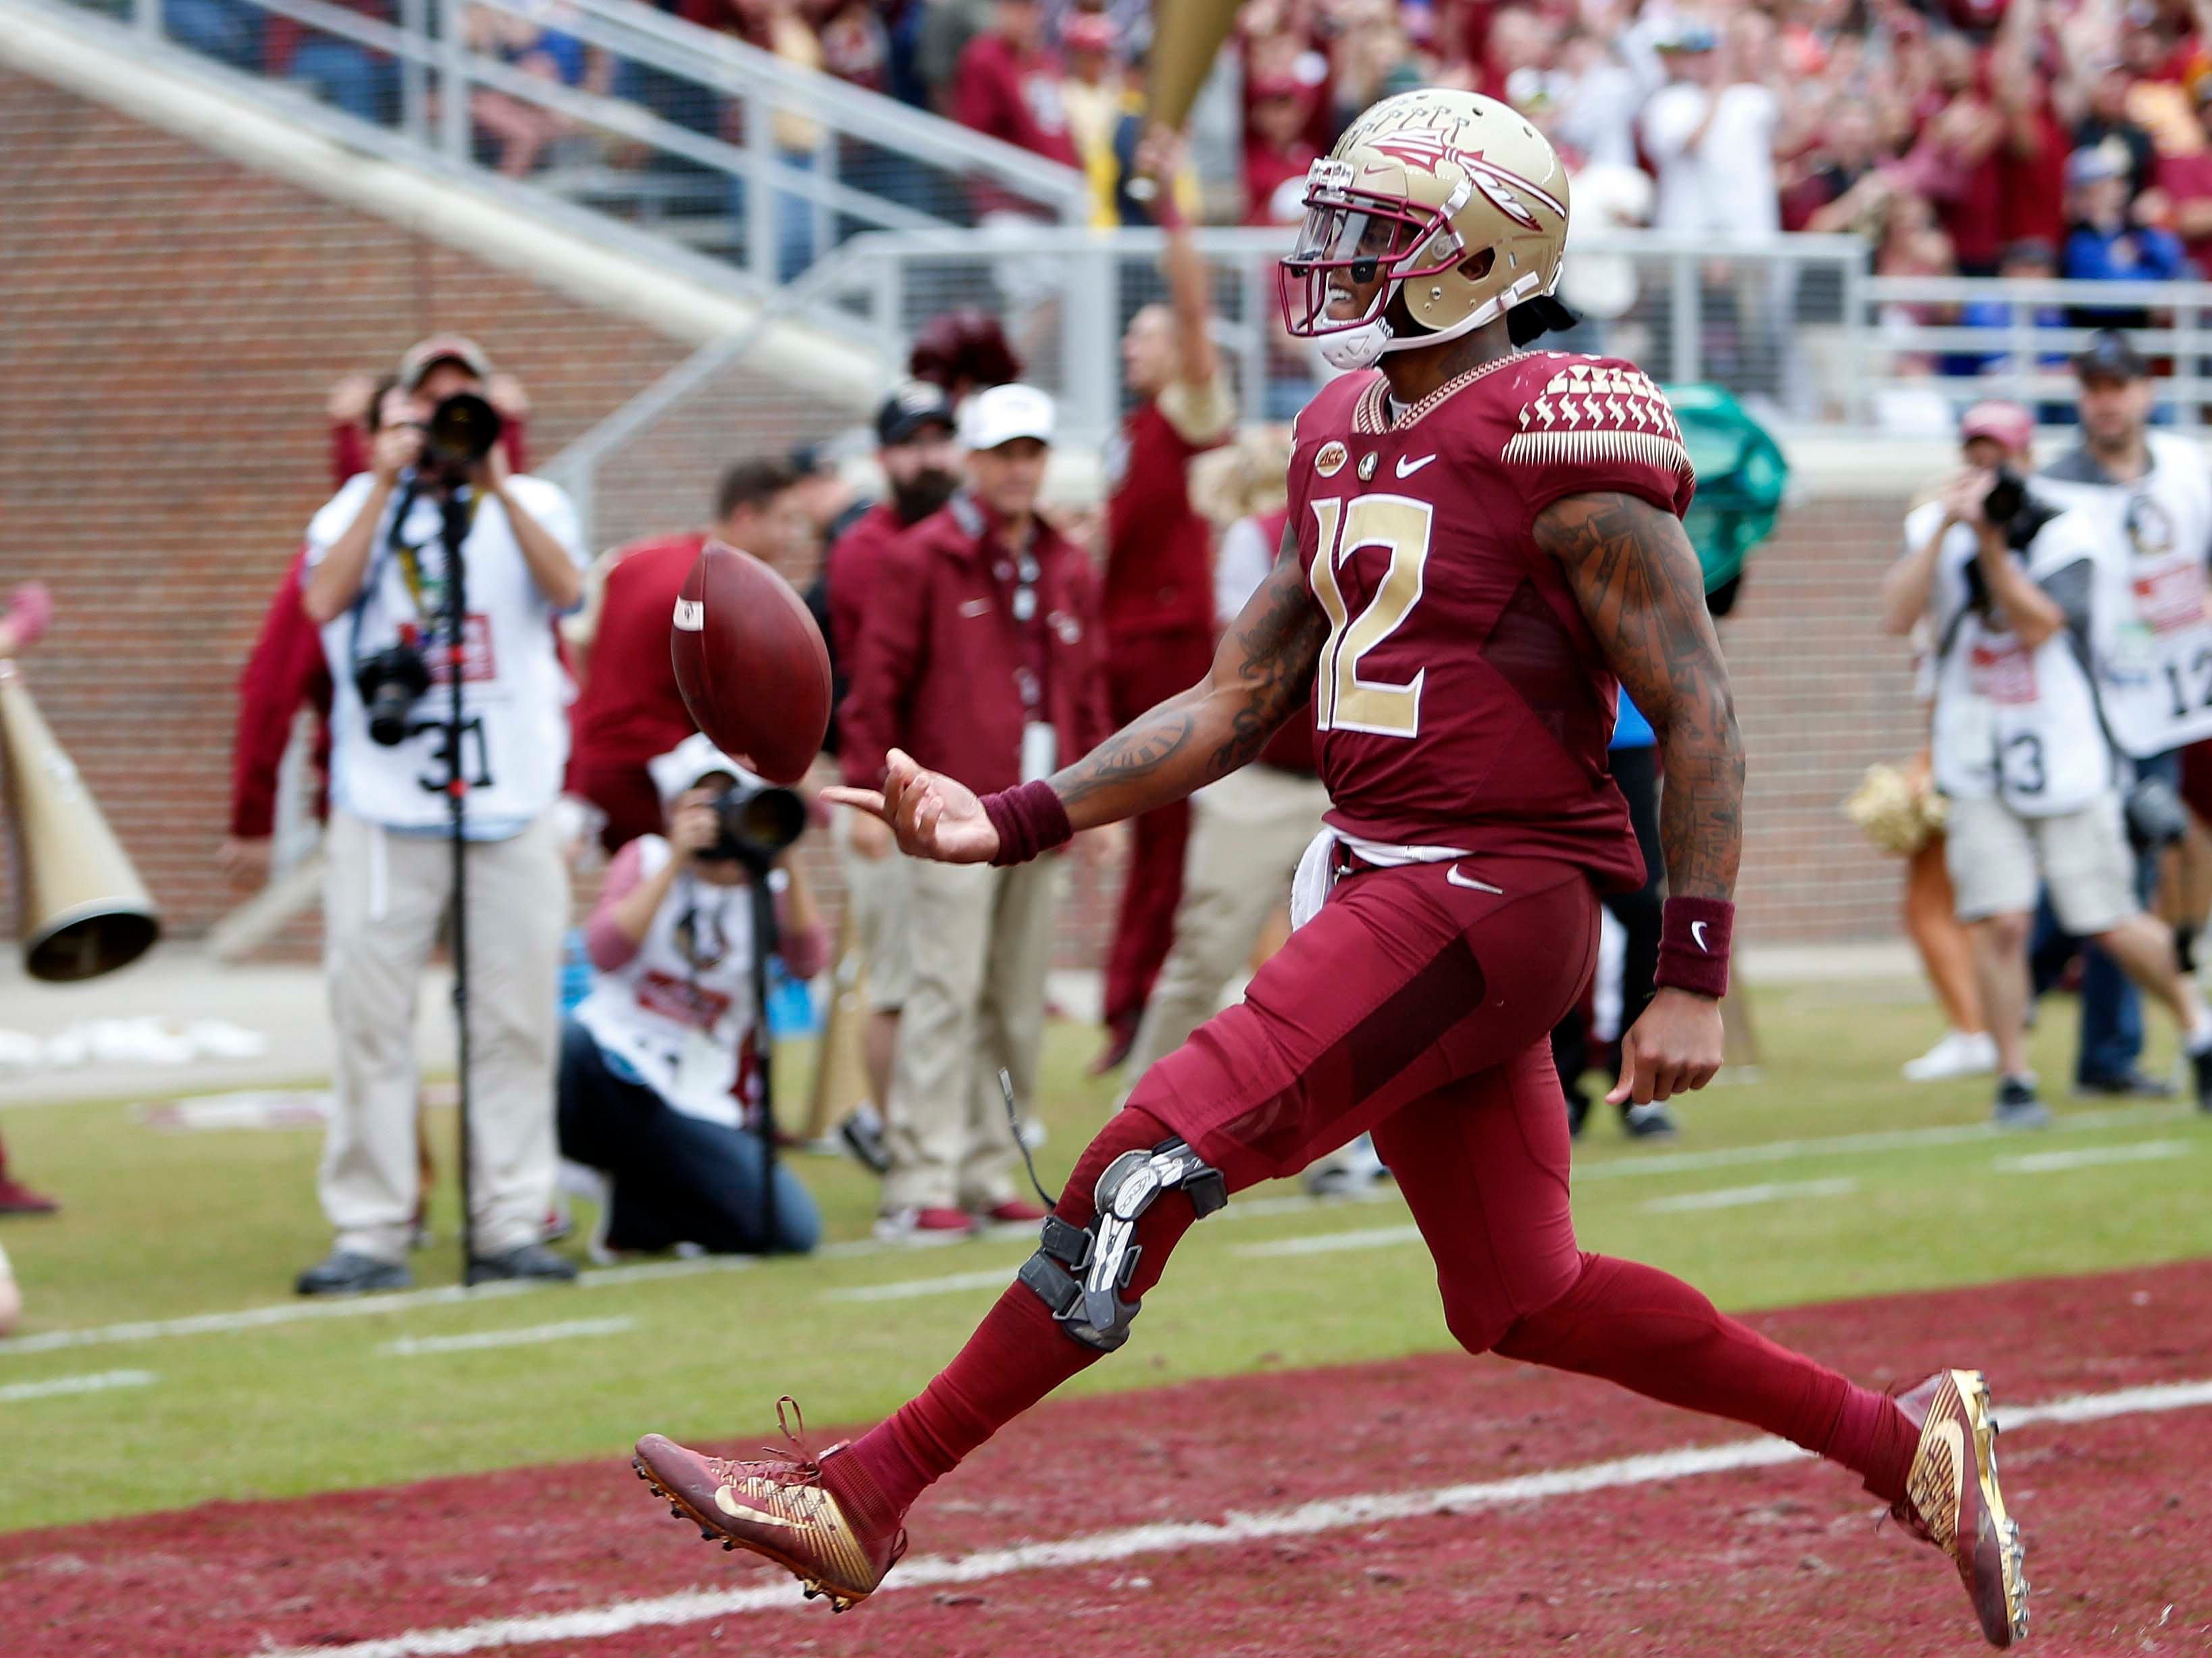 Florida State Seminoles quarterback Deondre Francois (12) flips the ball to an official after scoring against the Florida Gators during the second-half action at Doak Campbell Stadium.